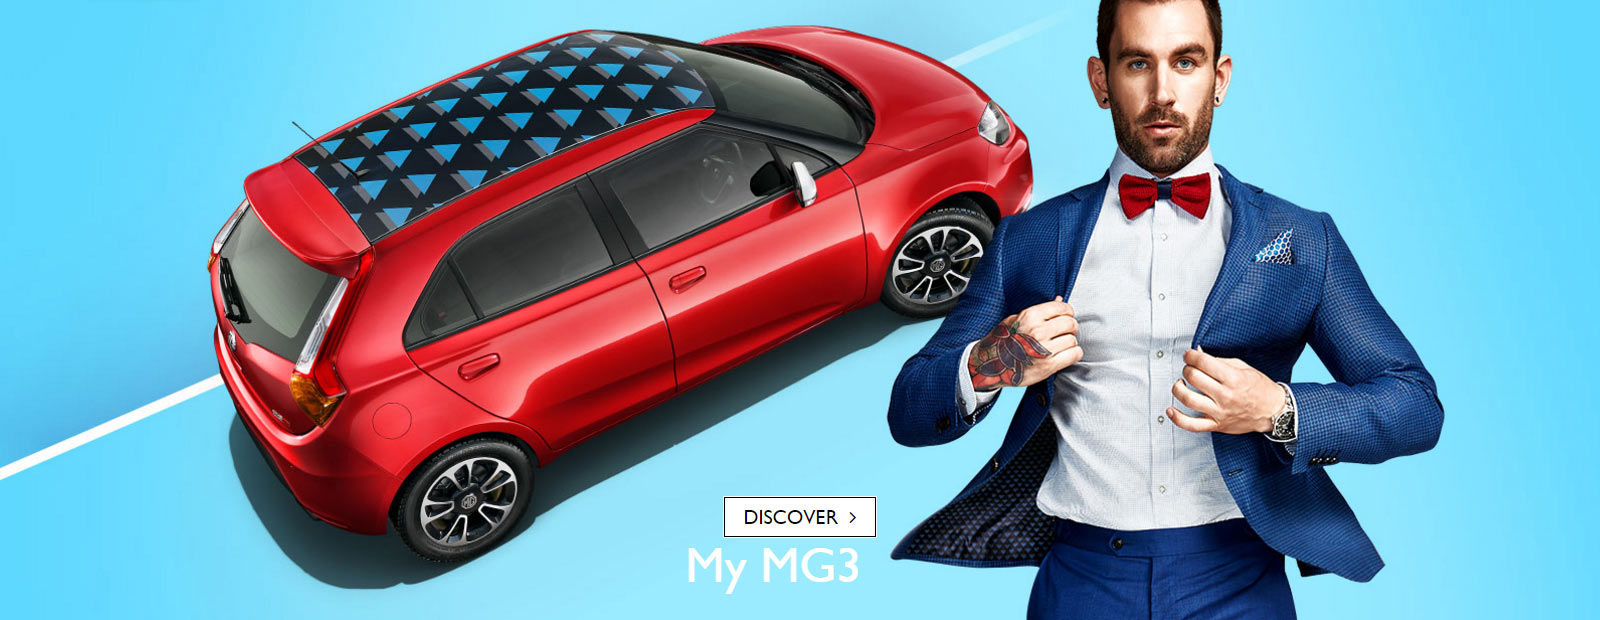 Discover the all new MG MG3 hatch today! The perfect car for the Brisbane driver.